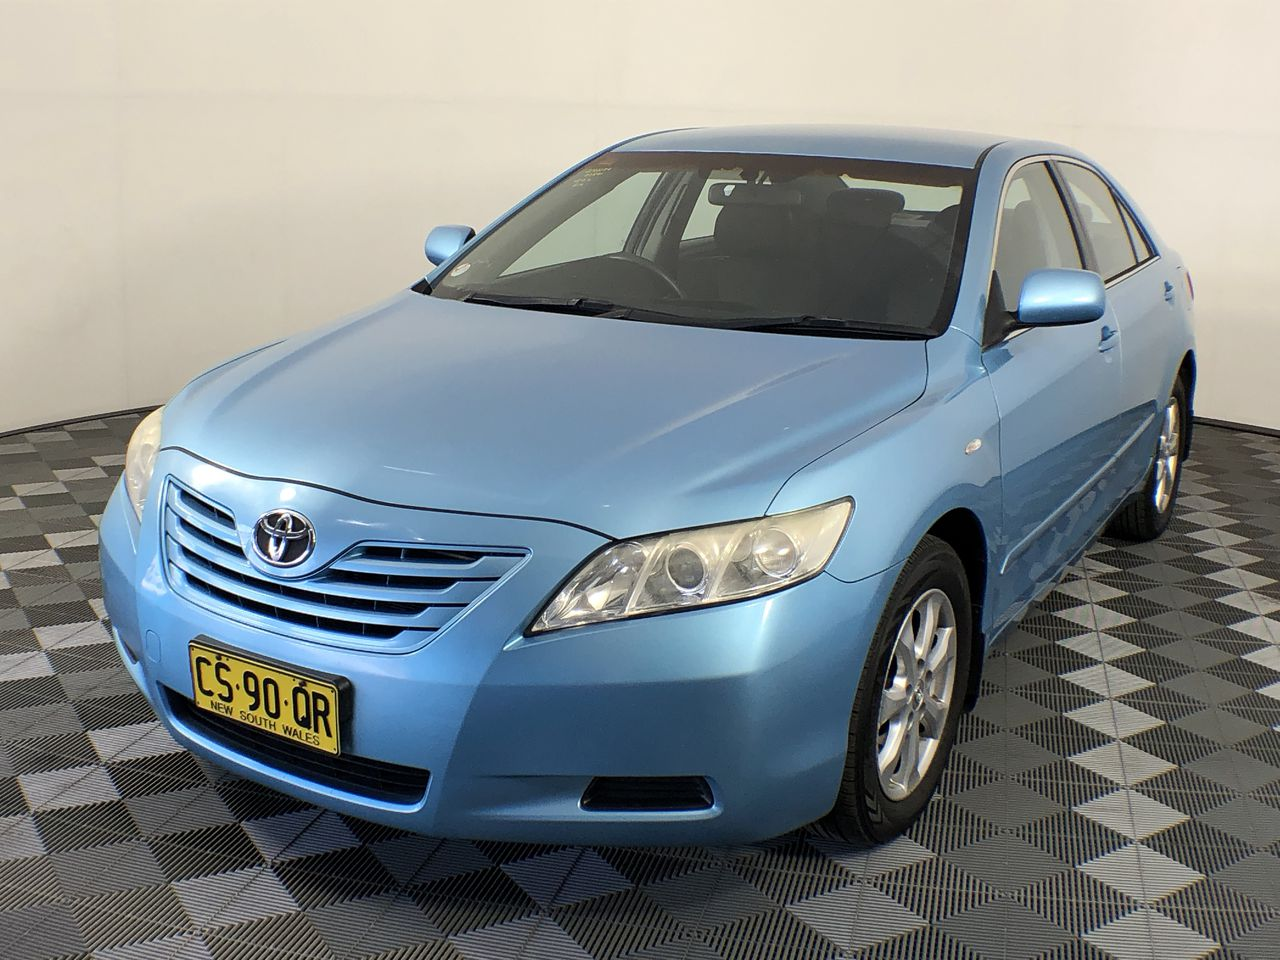 2007 Toyota Camry Altise ACV40R Manual Sedan